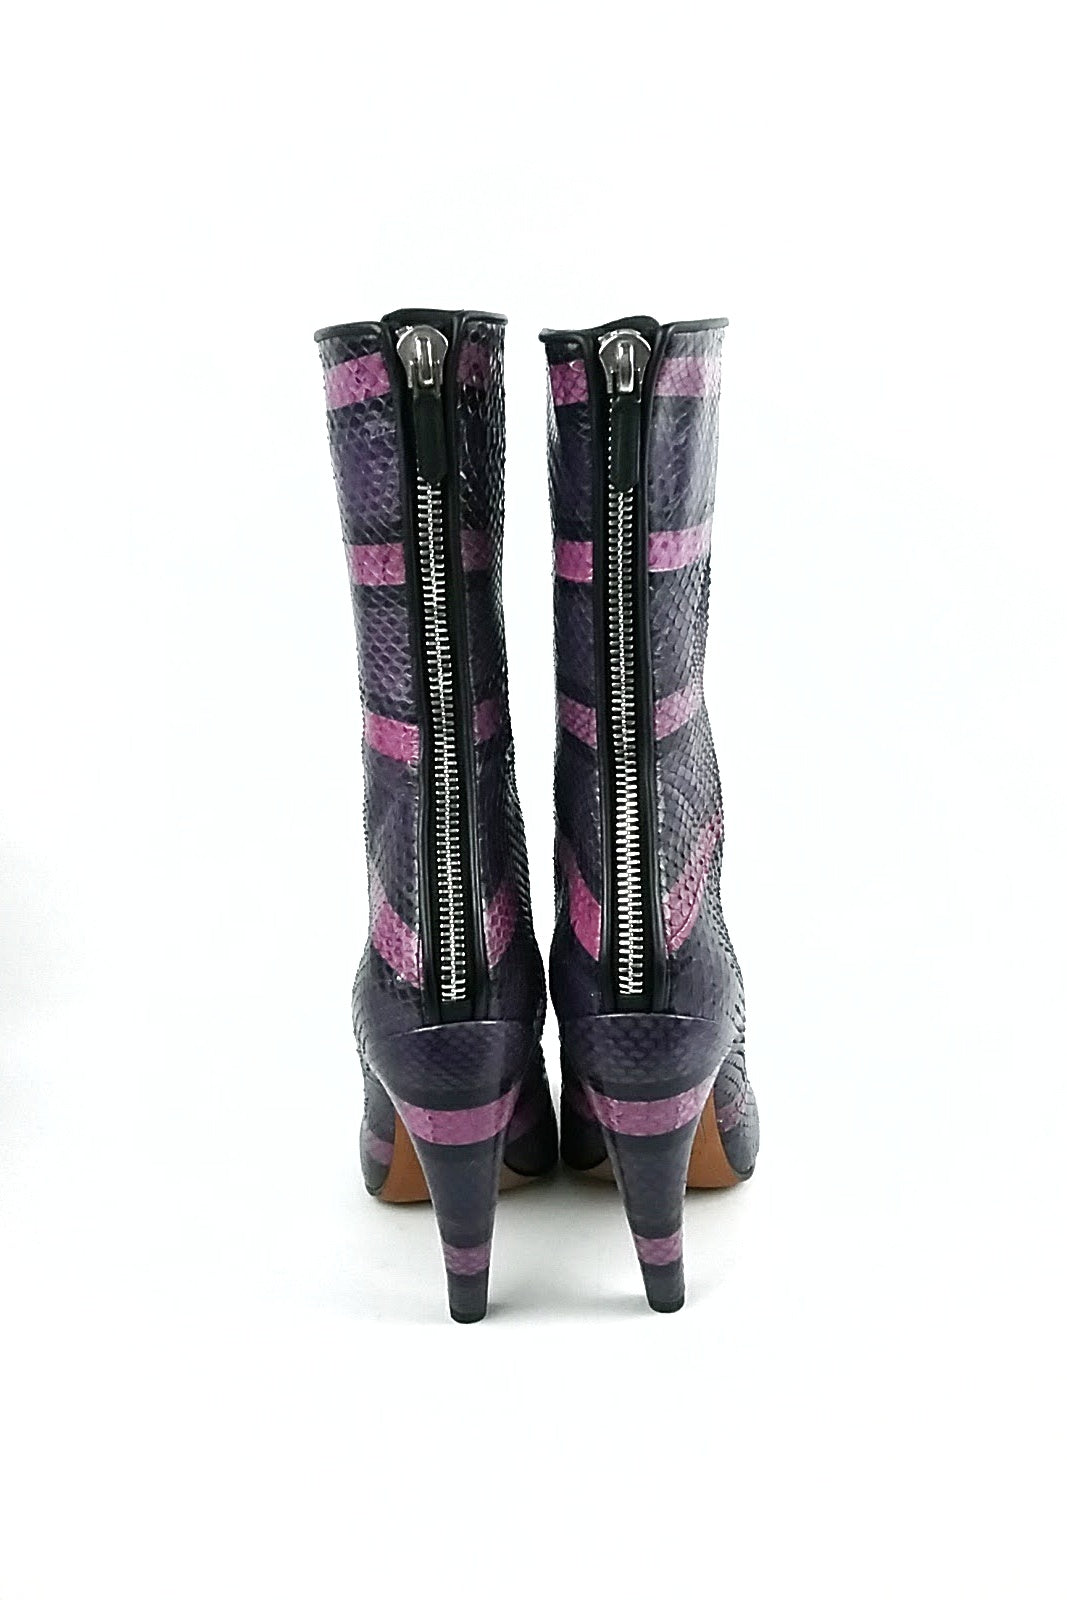 Purple Striped Snakeskin Curved High Boots